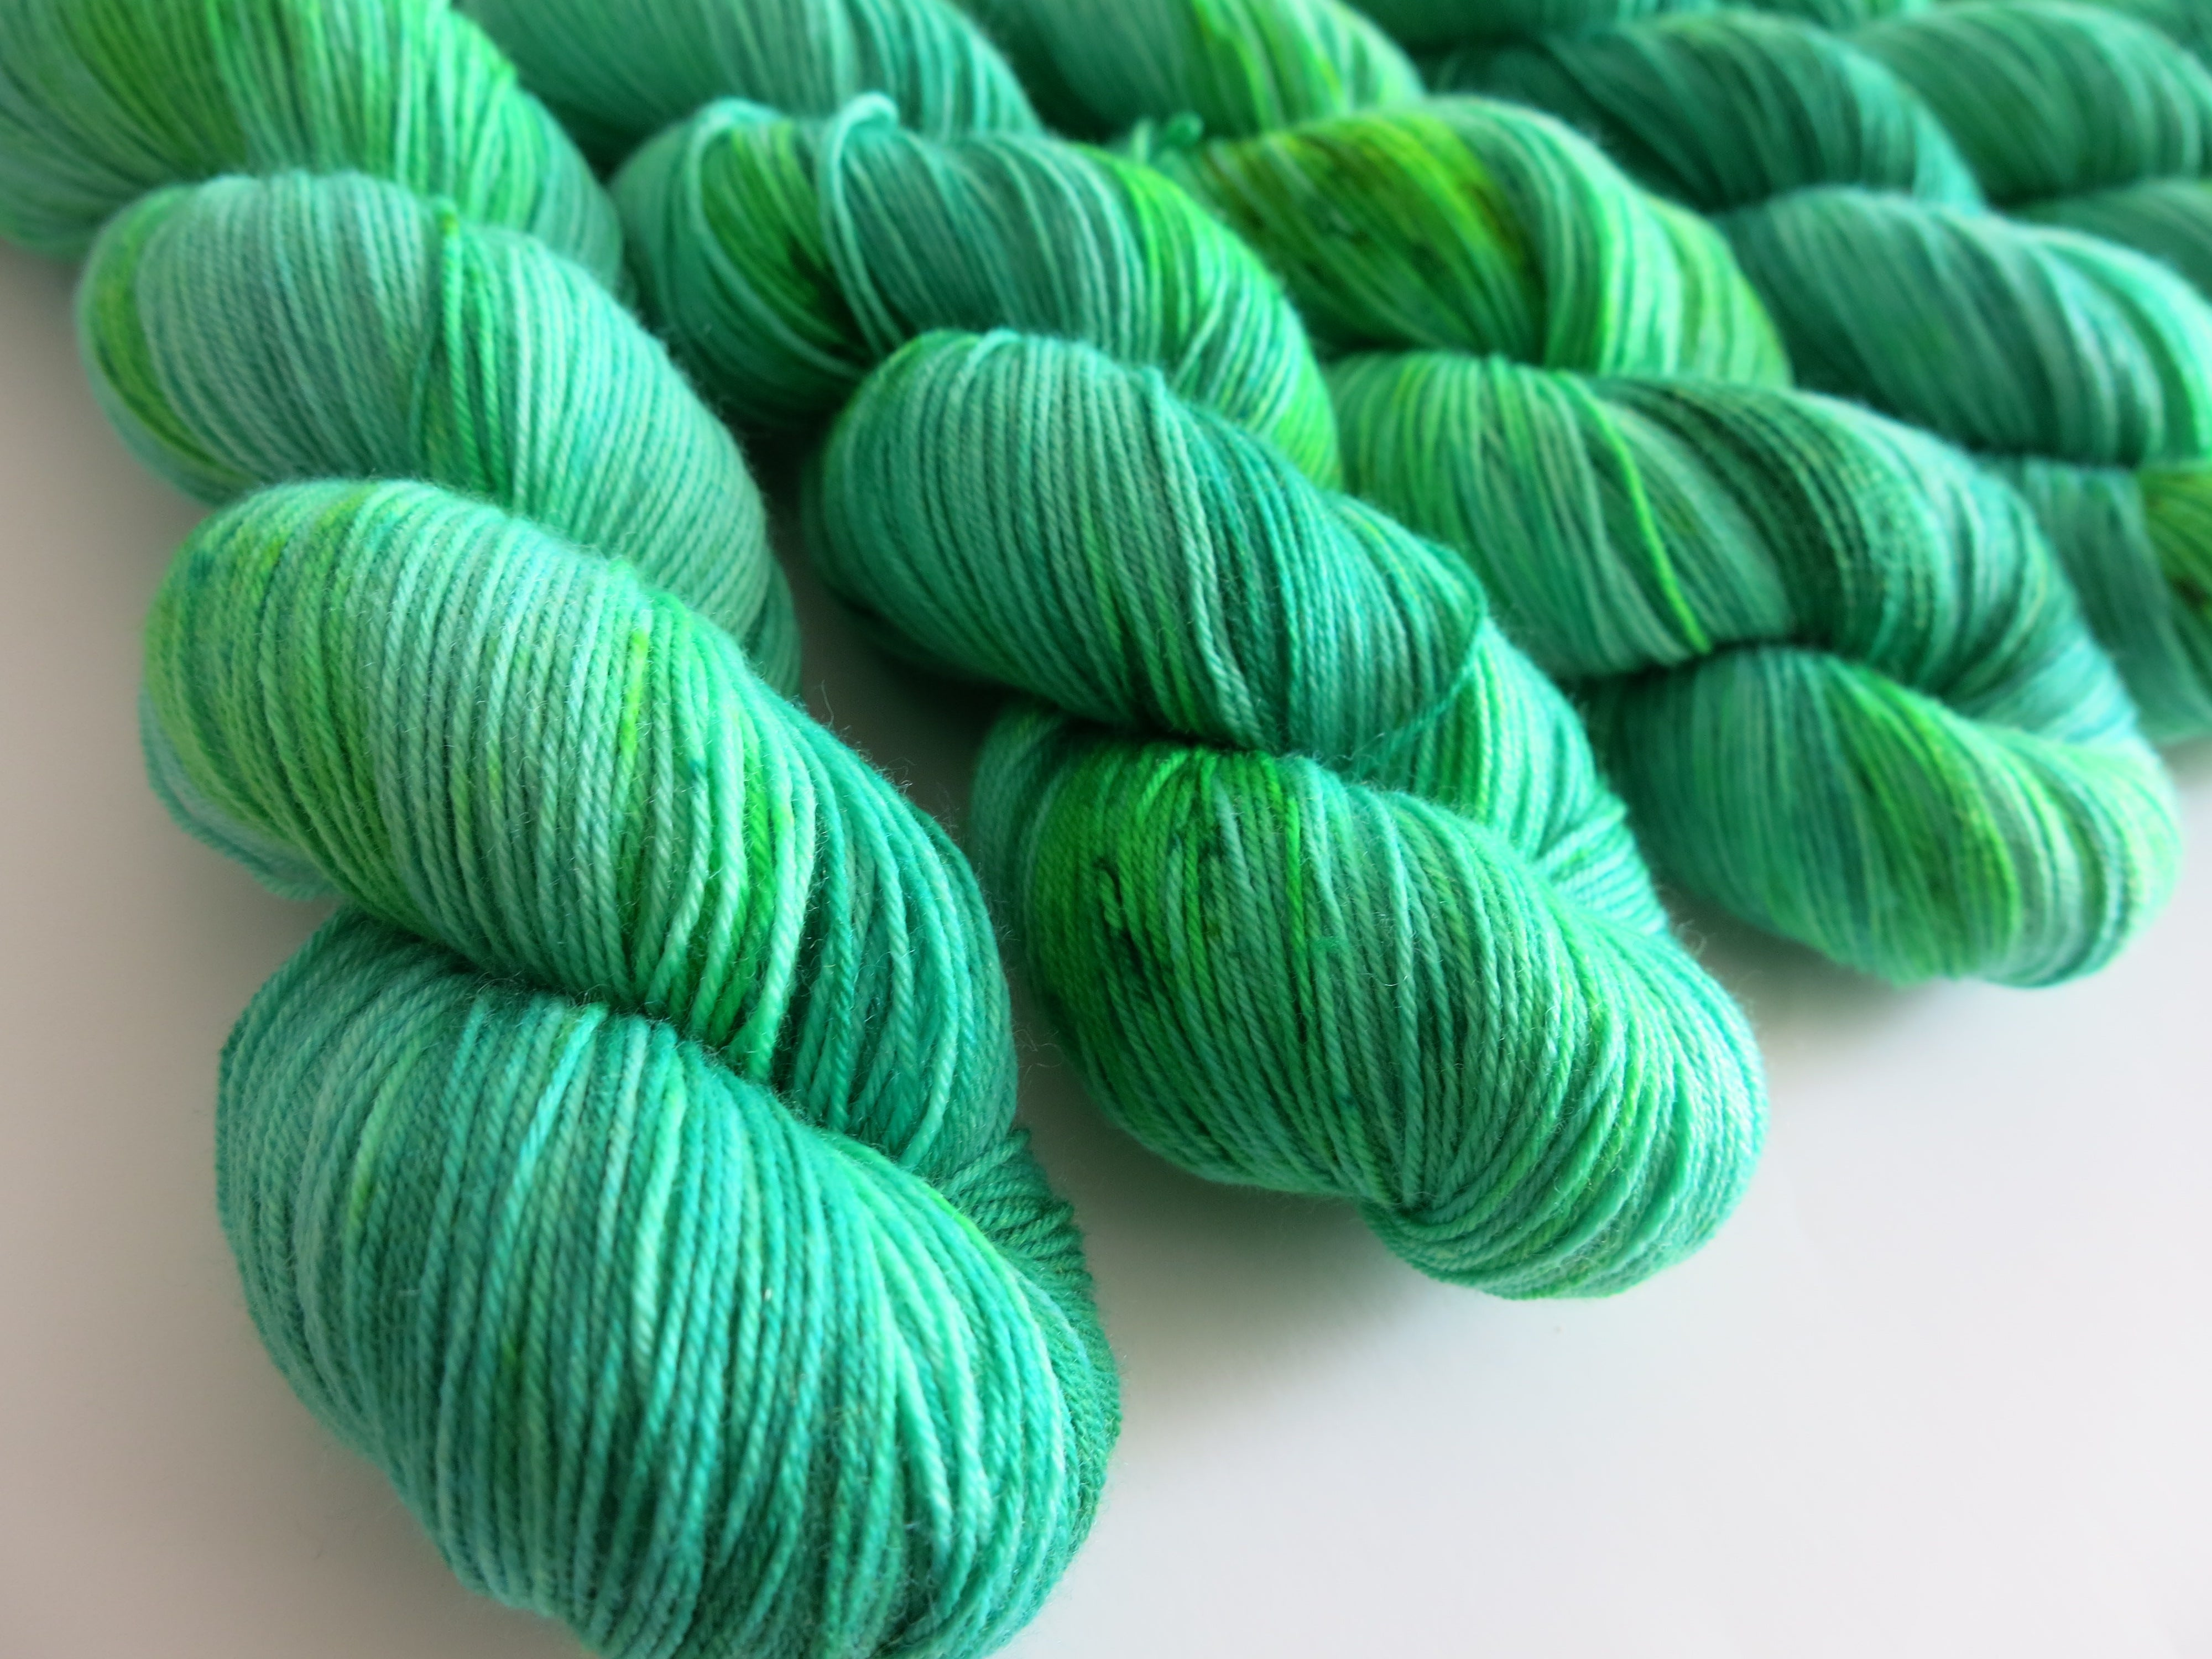 indie dyed yarn inspired by the wizard of oz